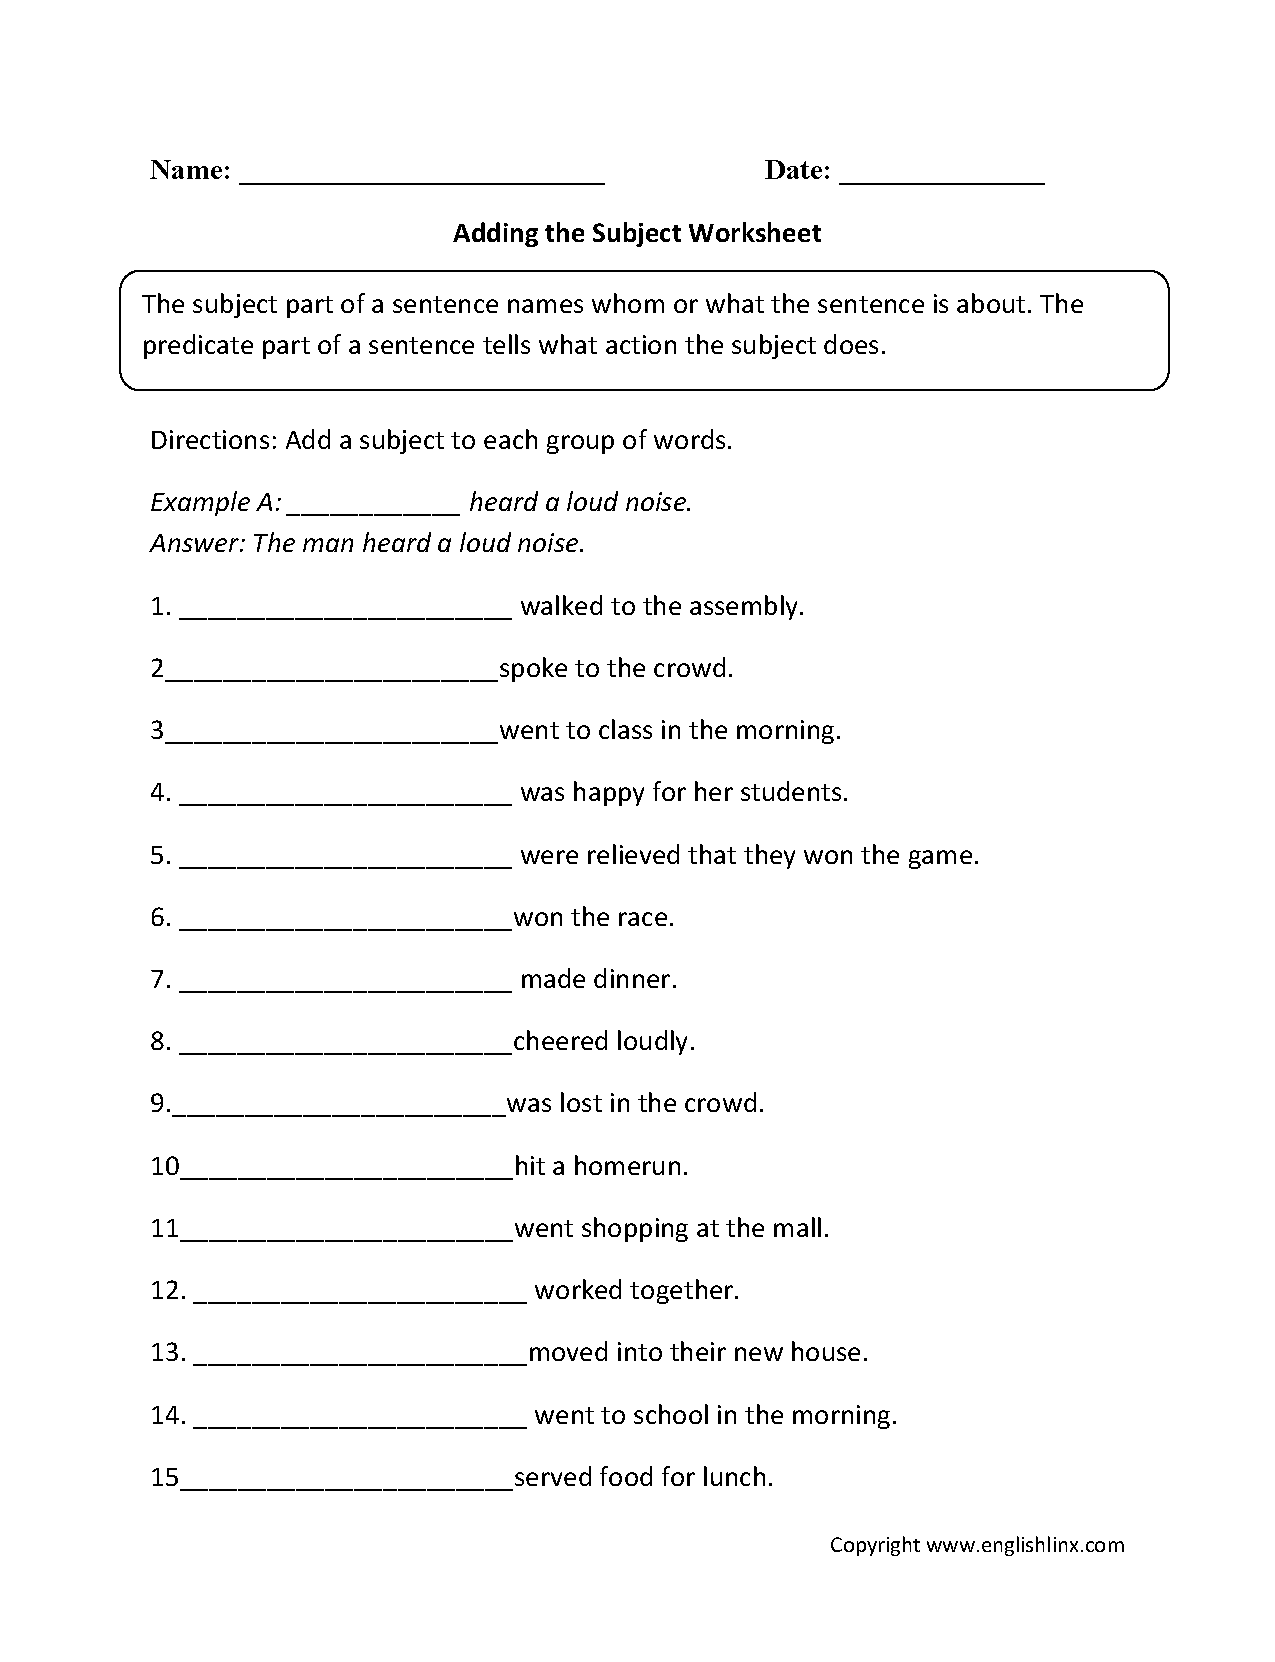 Free Worksheet Grammar Worksheets 7th Grade englishlinx com subject and predicate worksheets adding a worksheet